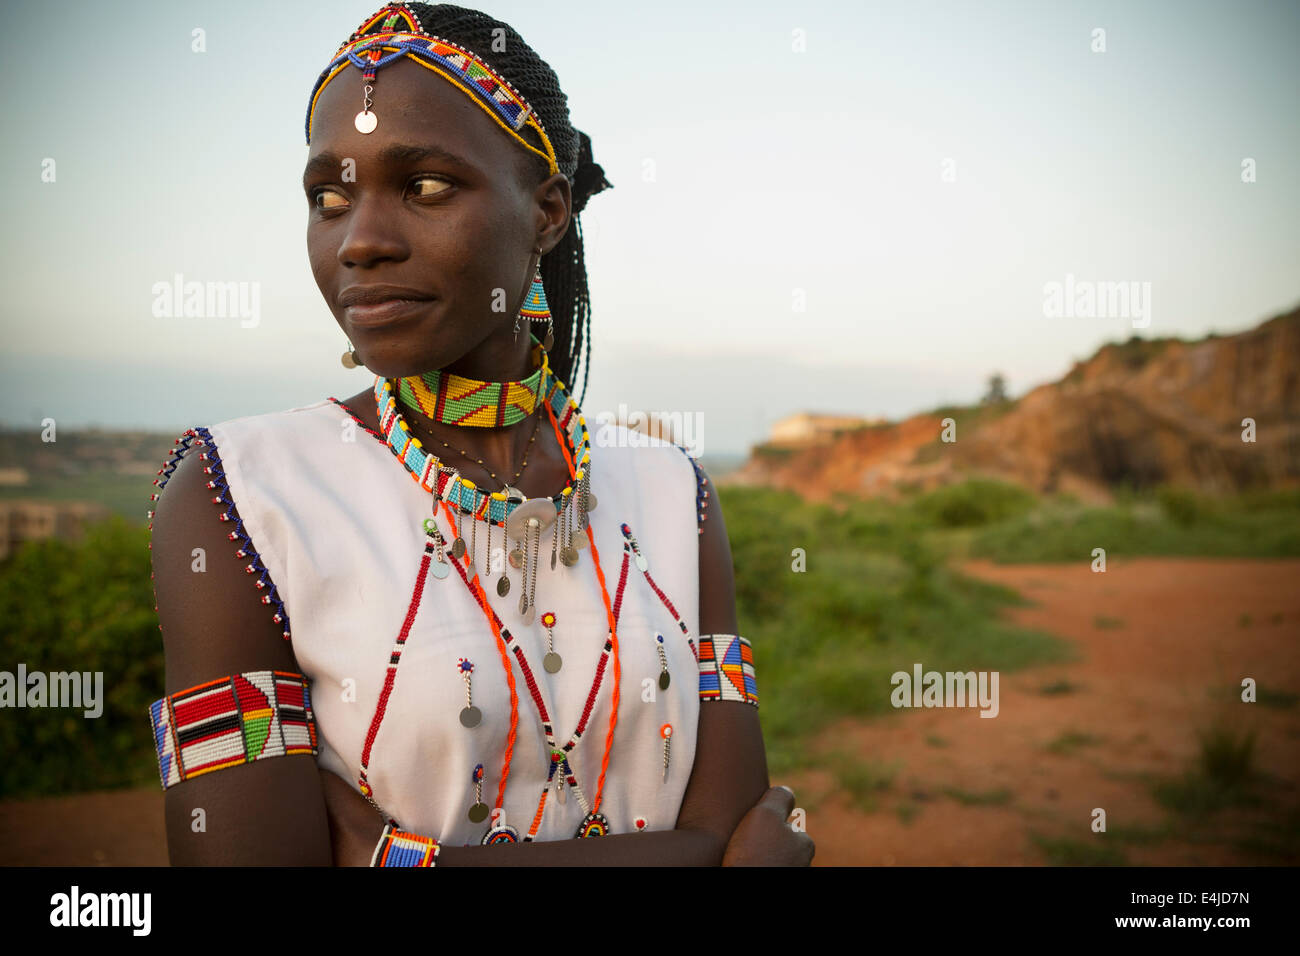 Portrait of young Maasai woman in East Africa. Stock Photo